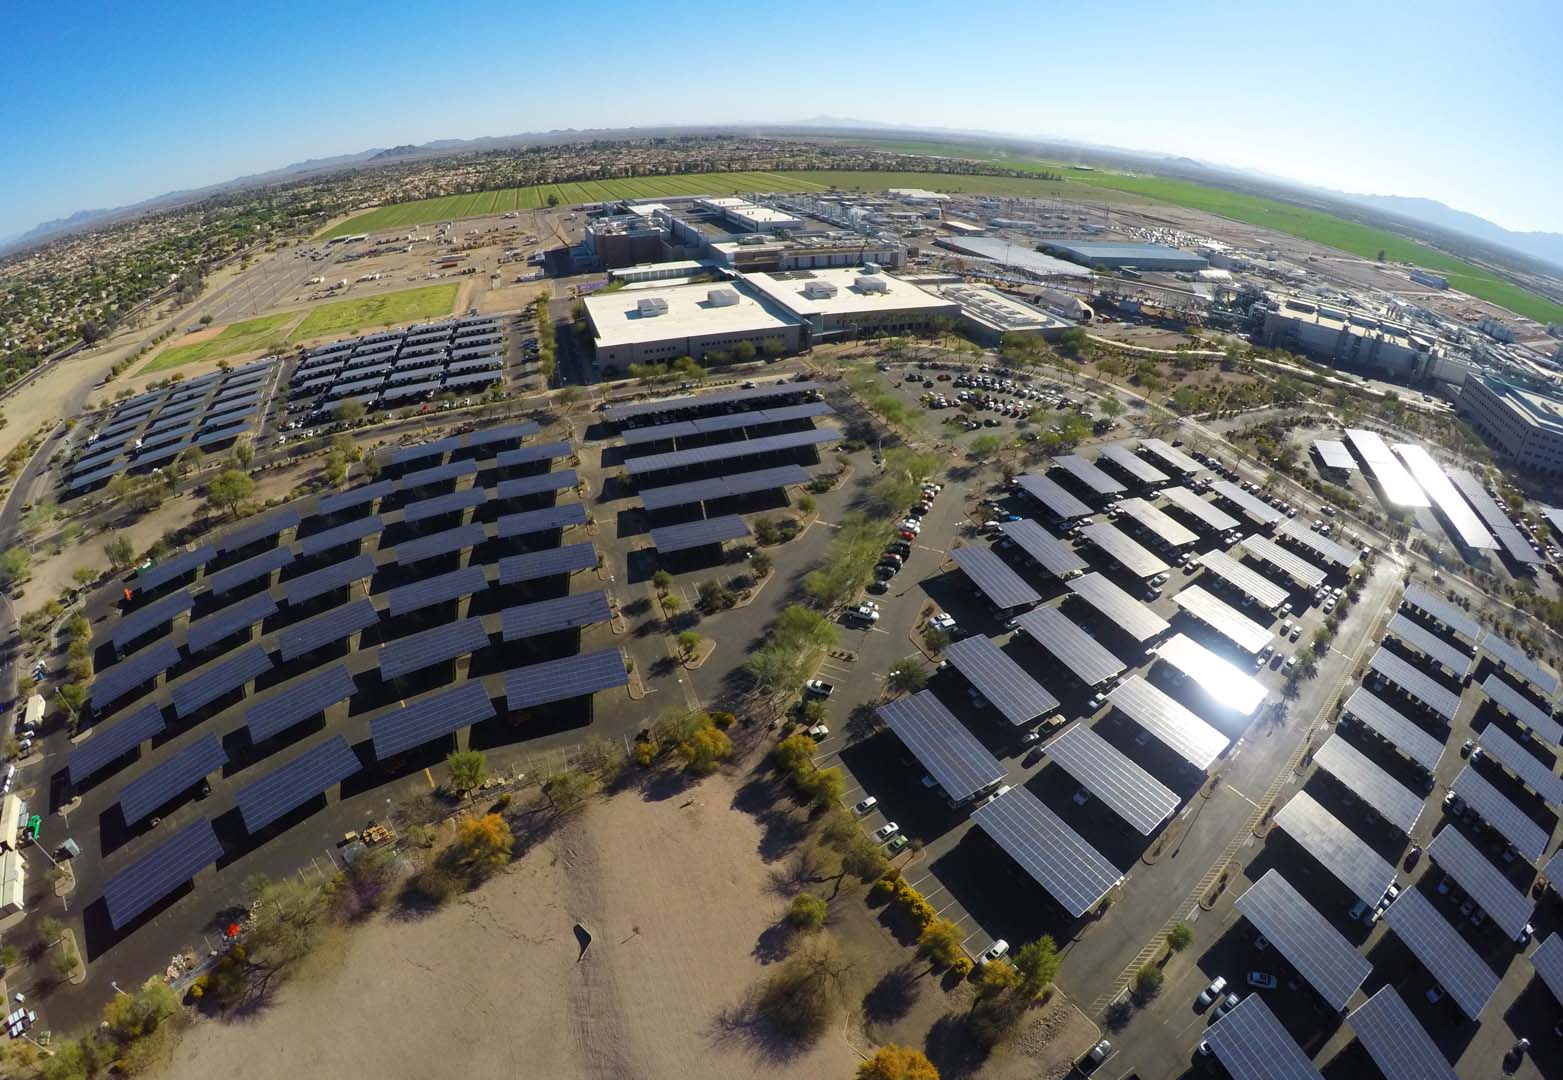 "Intel noted in its latest 2017-2018 ""Intel Corporate Responsibility Report"" that its major manufacturing and R&D campus in Ocotillo, Arizona utilises PV carports extensively onsite and has installed more than 8,000 solar parking spots worldwide to date."